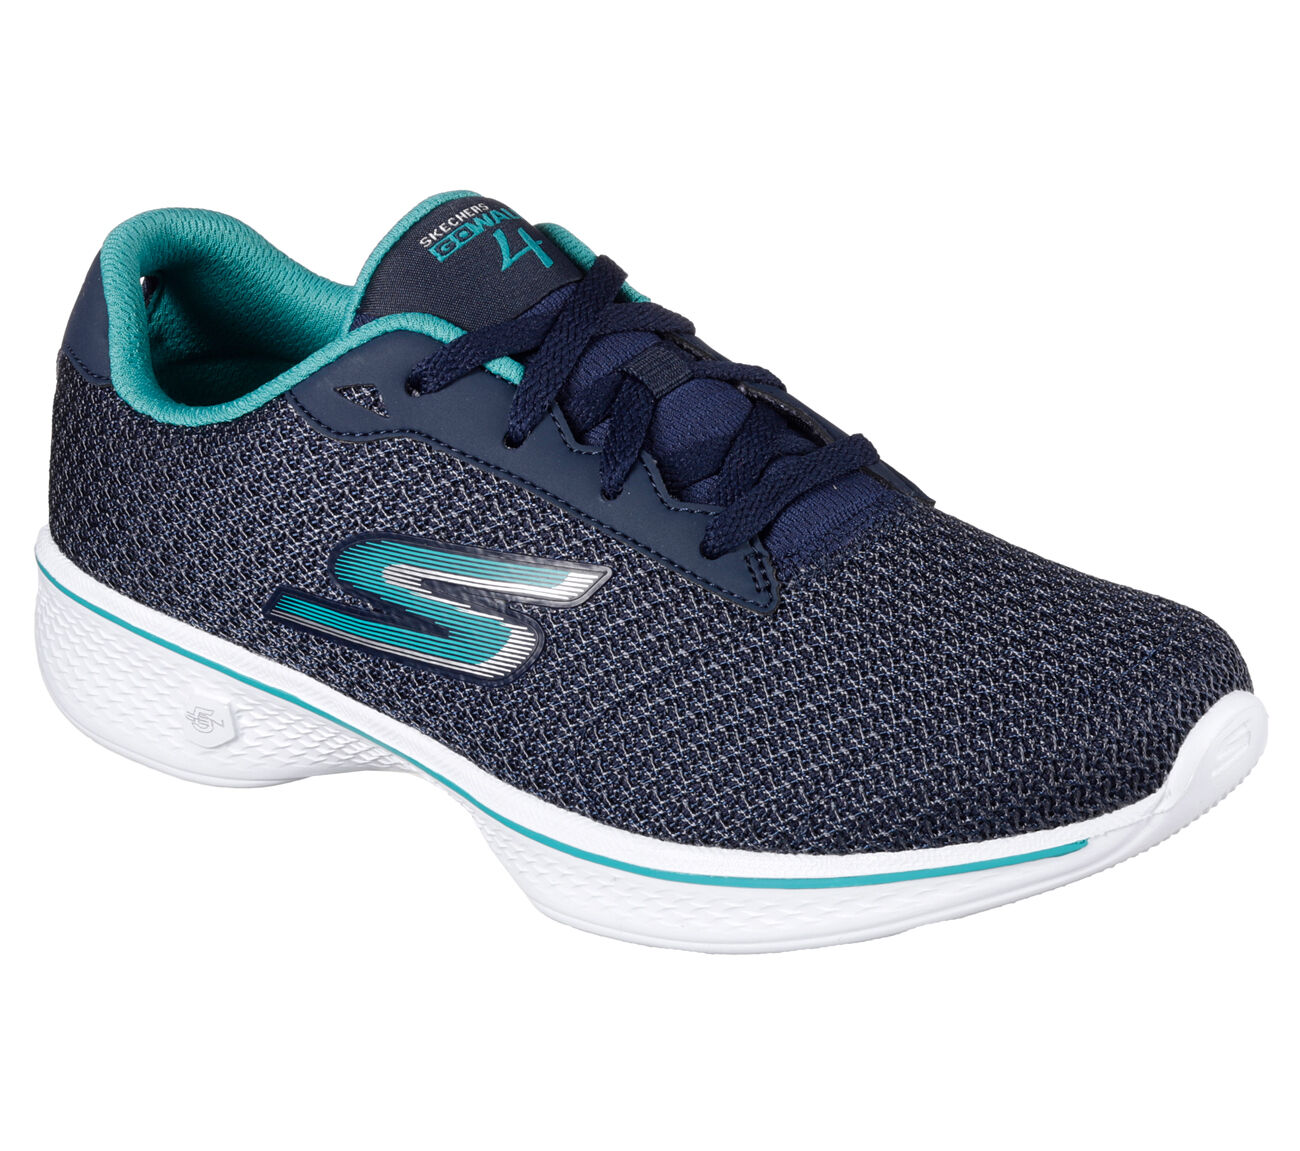 Women's Skechers Gowalk 4 Glorify Walking Shoes US-6 Navy